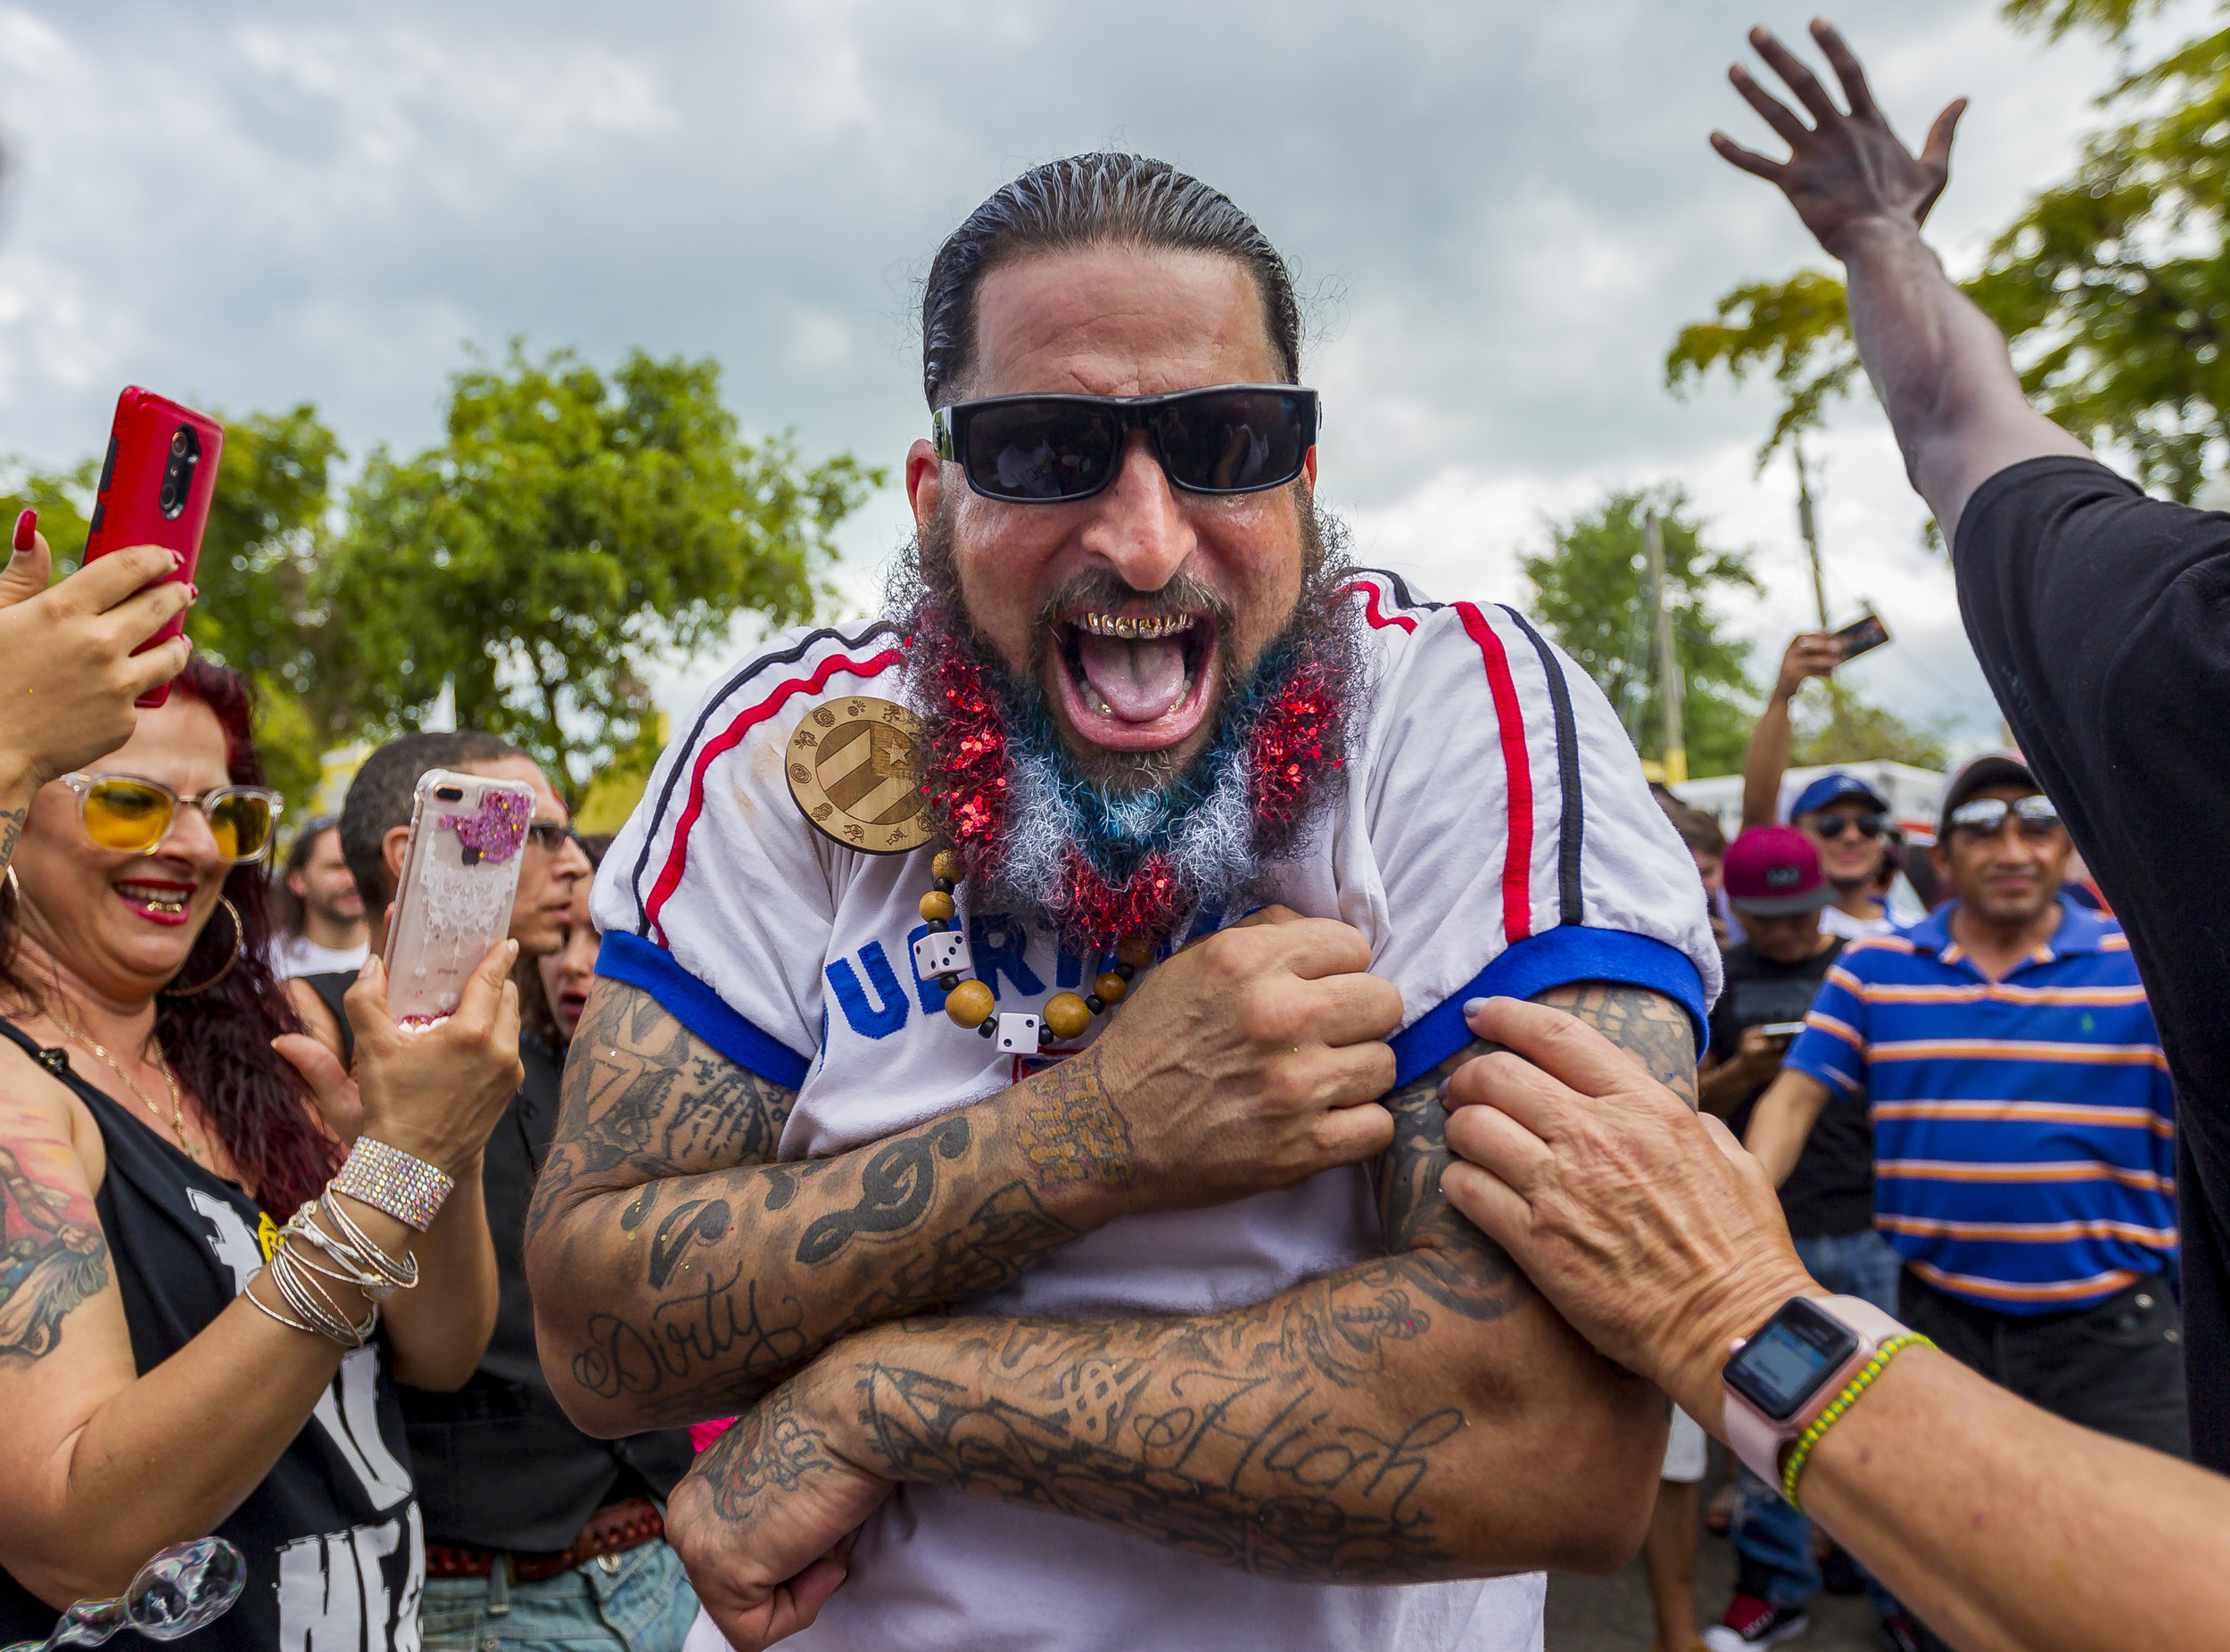 Vince Colon dances in the middle of a crowd during the Carnival Miami Calle Ocho festival in Little Havana on Sunday, March 11, 2018.